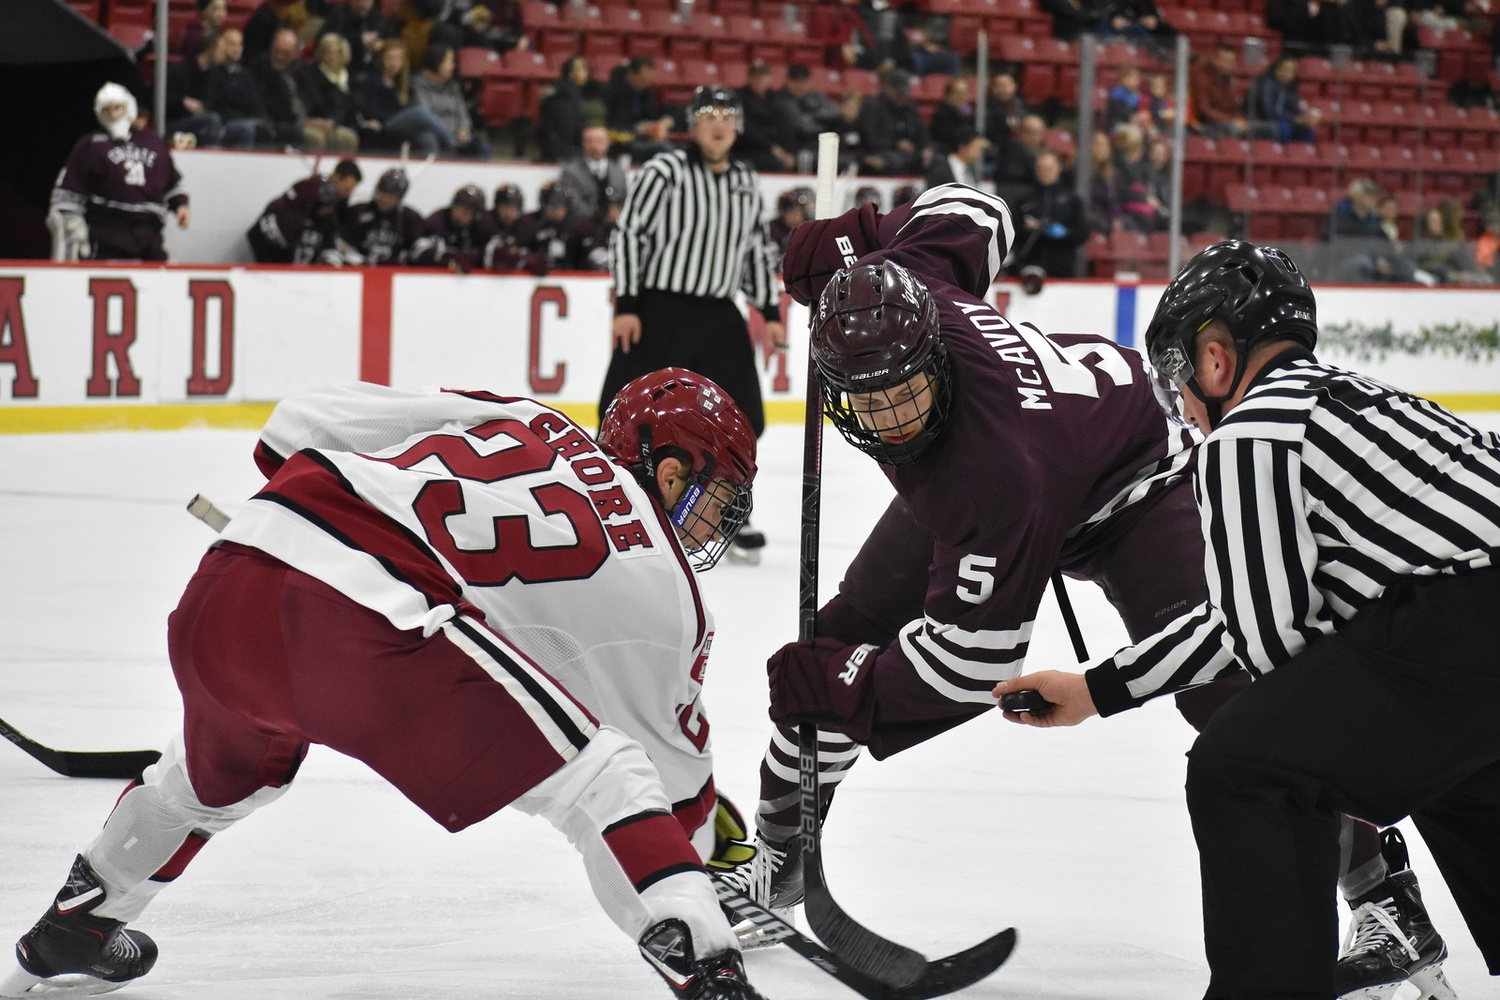 The Crimson completed a season sweep of the Raiders on Saturday afternoon after dropping both contests to Colgate in 2017-2018.